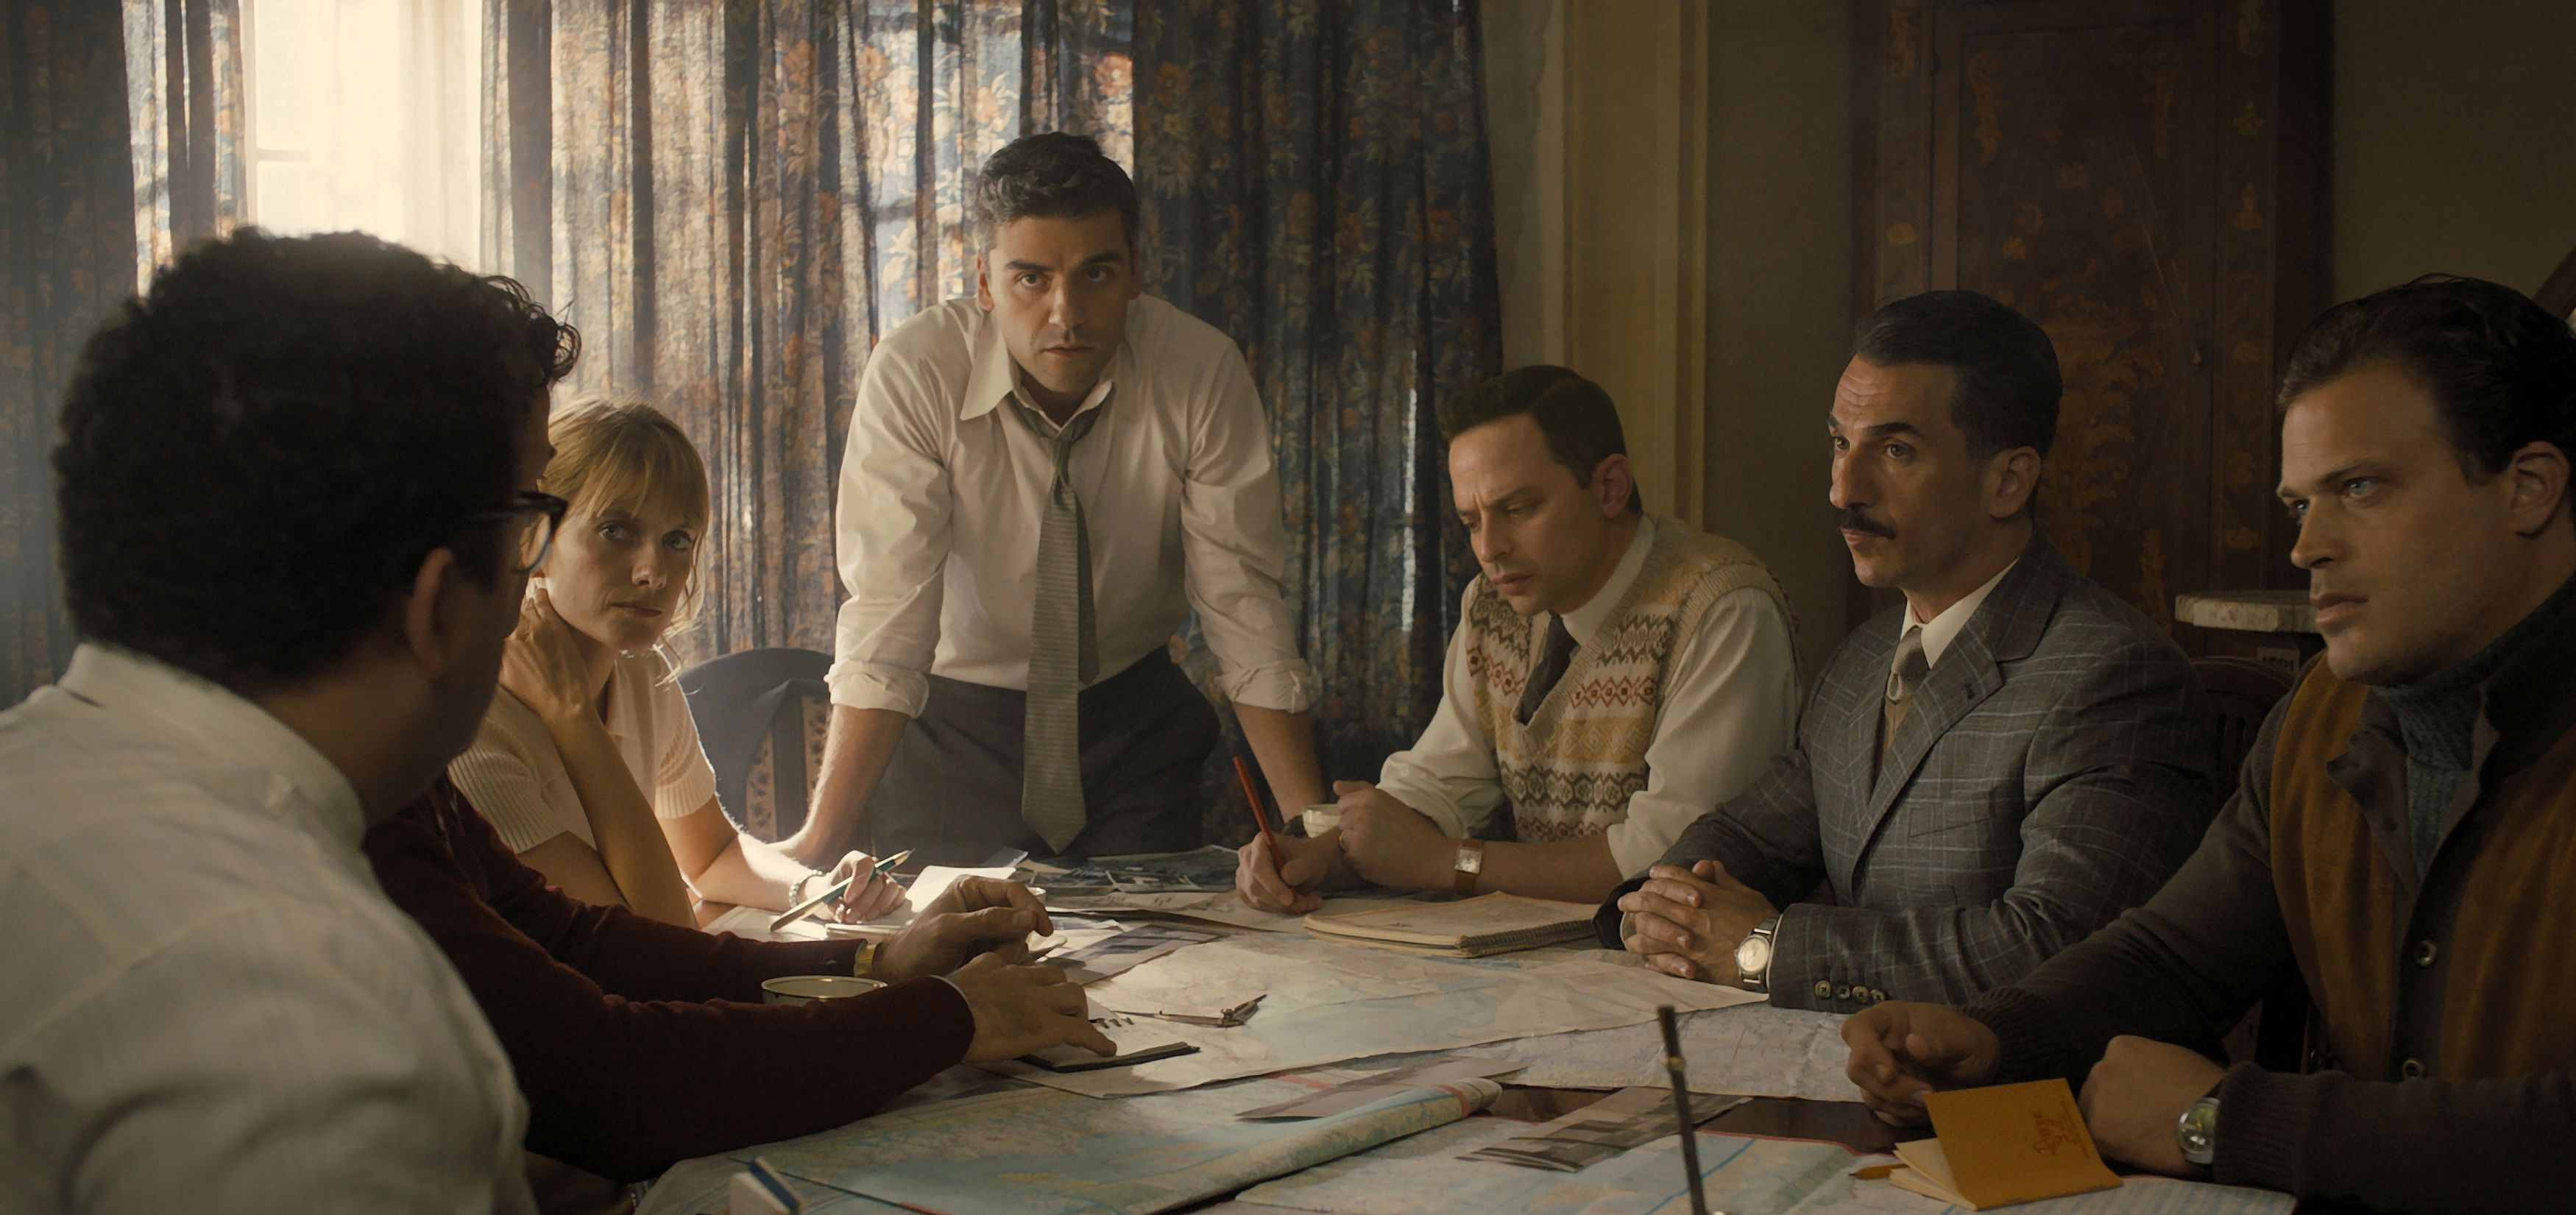 operation-finale-movie-HD-Stills-and-Poster-.jpg